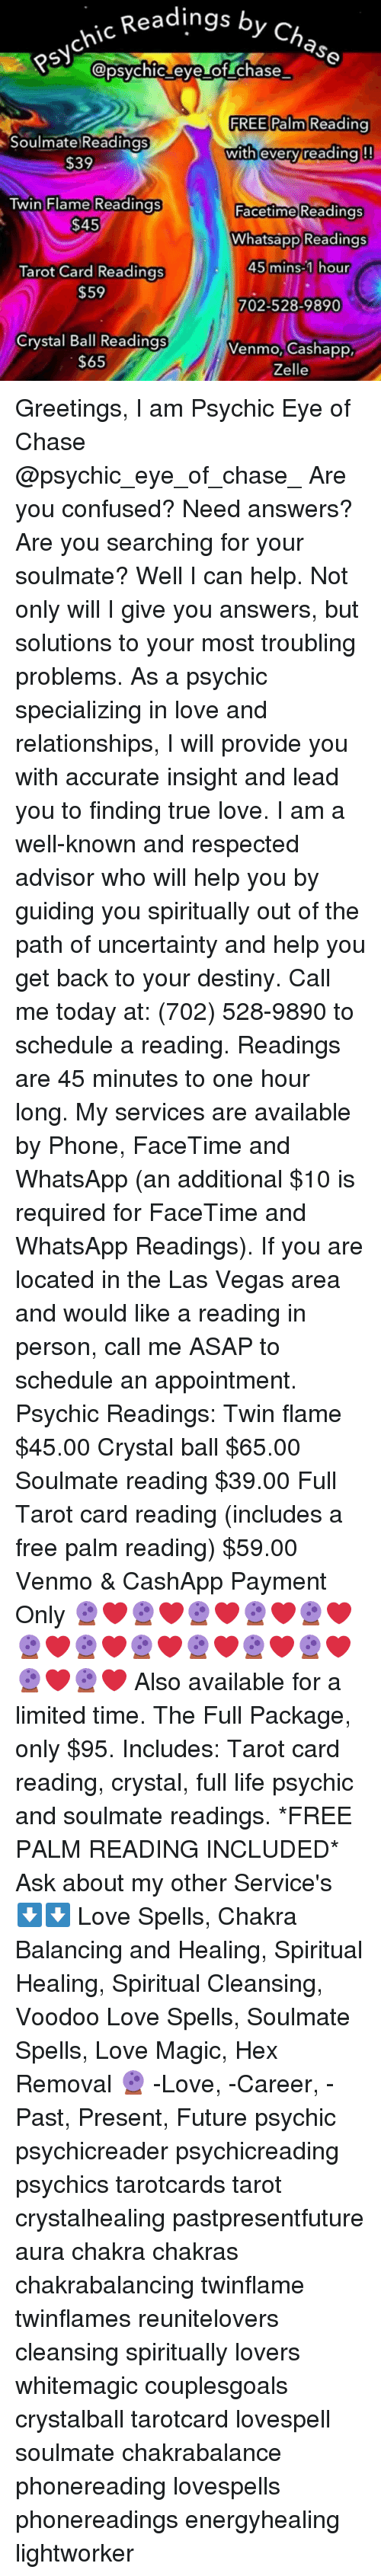 Confused, Destiny, and Facetime: chic Readings by  Psyc  5) apaychtacy of.chase  FREE Palm Reading  Soulmate)Readings  $39  with everv/readinal!!  Twin Flame Readings  Facetime Readings  Whatsapp Readings  Tarot Card Readings  $59  mins  our  702-528-9890  Crystal Ball Readings  $65  venmo, Cashapp  Zelle Greetings, I am Psychic Eye of Chase @psychic_eye_of_chase_ Are you confused? Need answers? Are you searching for your soulmate? Well I can help. Not only will I give you answers, but solutions to your most troubling problems. As a psychic specializing in love and relationships, I will provide you with accurate insight and lead you to finding true love. I am a well-known and respected advisor who will help you by guiding you spiritually out of the path of uncertainty and help you get back to your destiny. Call me today at: (702) 528-9890 to schedule a reading. Readings are 45 minutes to one hour long. My services are available by Phone, FaceTime and WhatsApp (an additional $10 is required for FaceTime and WhatsApp Readings). If you are located in the Las Vegas area and would like a reading in person, call me ASAP to schedule an appointment. Psychic Readings: Twin flame $45.00 Crystal ball $65.00 Soulmate reading $39.00 Full Tarot card reading (includes a free palm reading) $59.00 Venmo & CashApp Payment Only 🔮❤🔮❤🔮❤🔮❤🔮❤🔮❤🔮❤🔮❤🔮❤🔮❤🔮❤🔮❤🔮❤ Also available for a limited time. The Full Package, only $95. Includes: Tarot card reading, crystal, full life psychic and soulmate readings. *FREE PALM READING INCLUDED* Ask about my other Service's ⬇⬇ Love Spells, Chakra Balancing and Healing, Spiritual Healing, Spiritual Cleansing, Voodoo Love Spells, Soulmate Spells, Love Magic, Hex Removal 🔮 -Love, -Career, -Past, Present, Future psychic psychicreader psychicreading psychics tarotcards tarot crystalhealing pastpresentfuture aura chakra chakras chakrabalancing twinflame twinflames reunitelovers cleansing spiritually lovers whitemagic couplesgoals crystalball tarotcard lovespell s